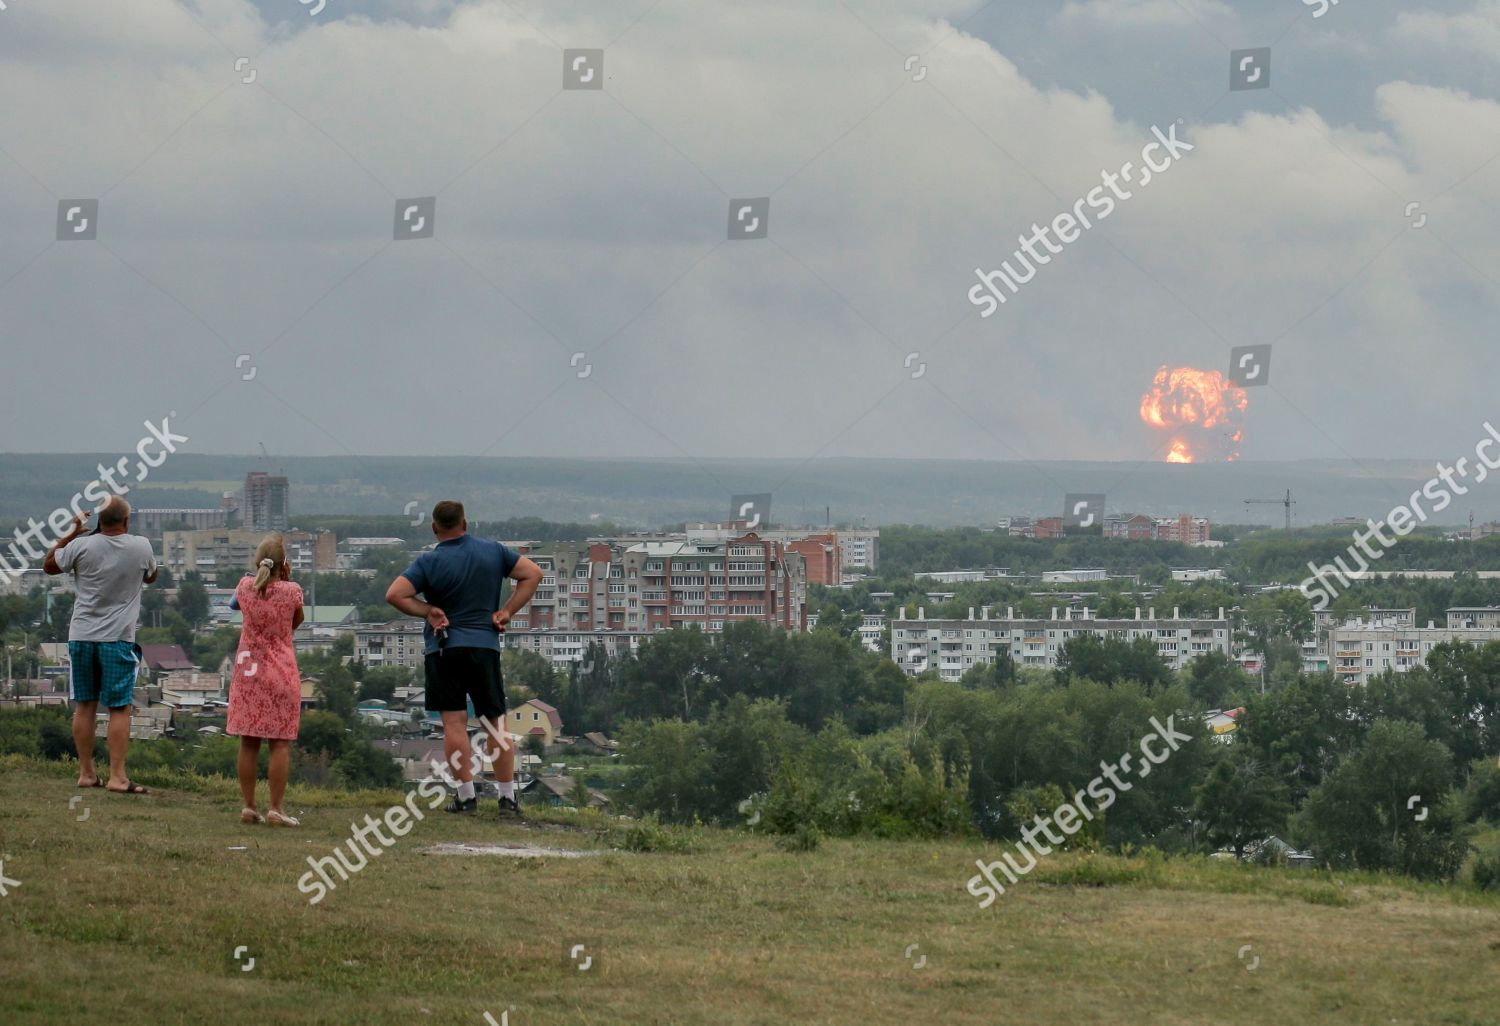 On people watch photograph explosions military ammunition ...